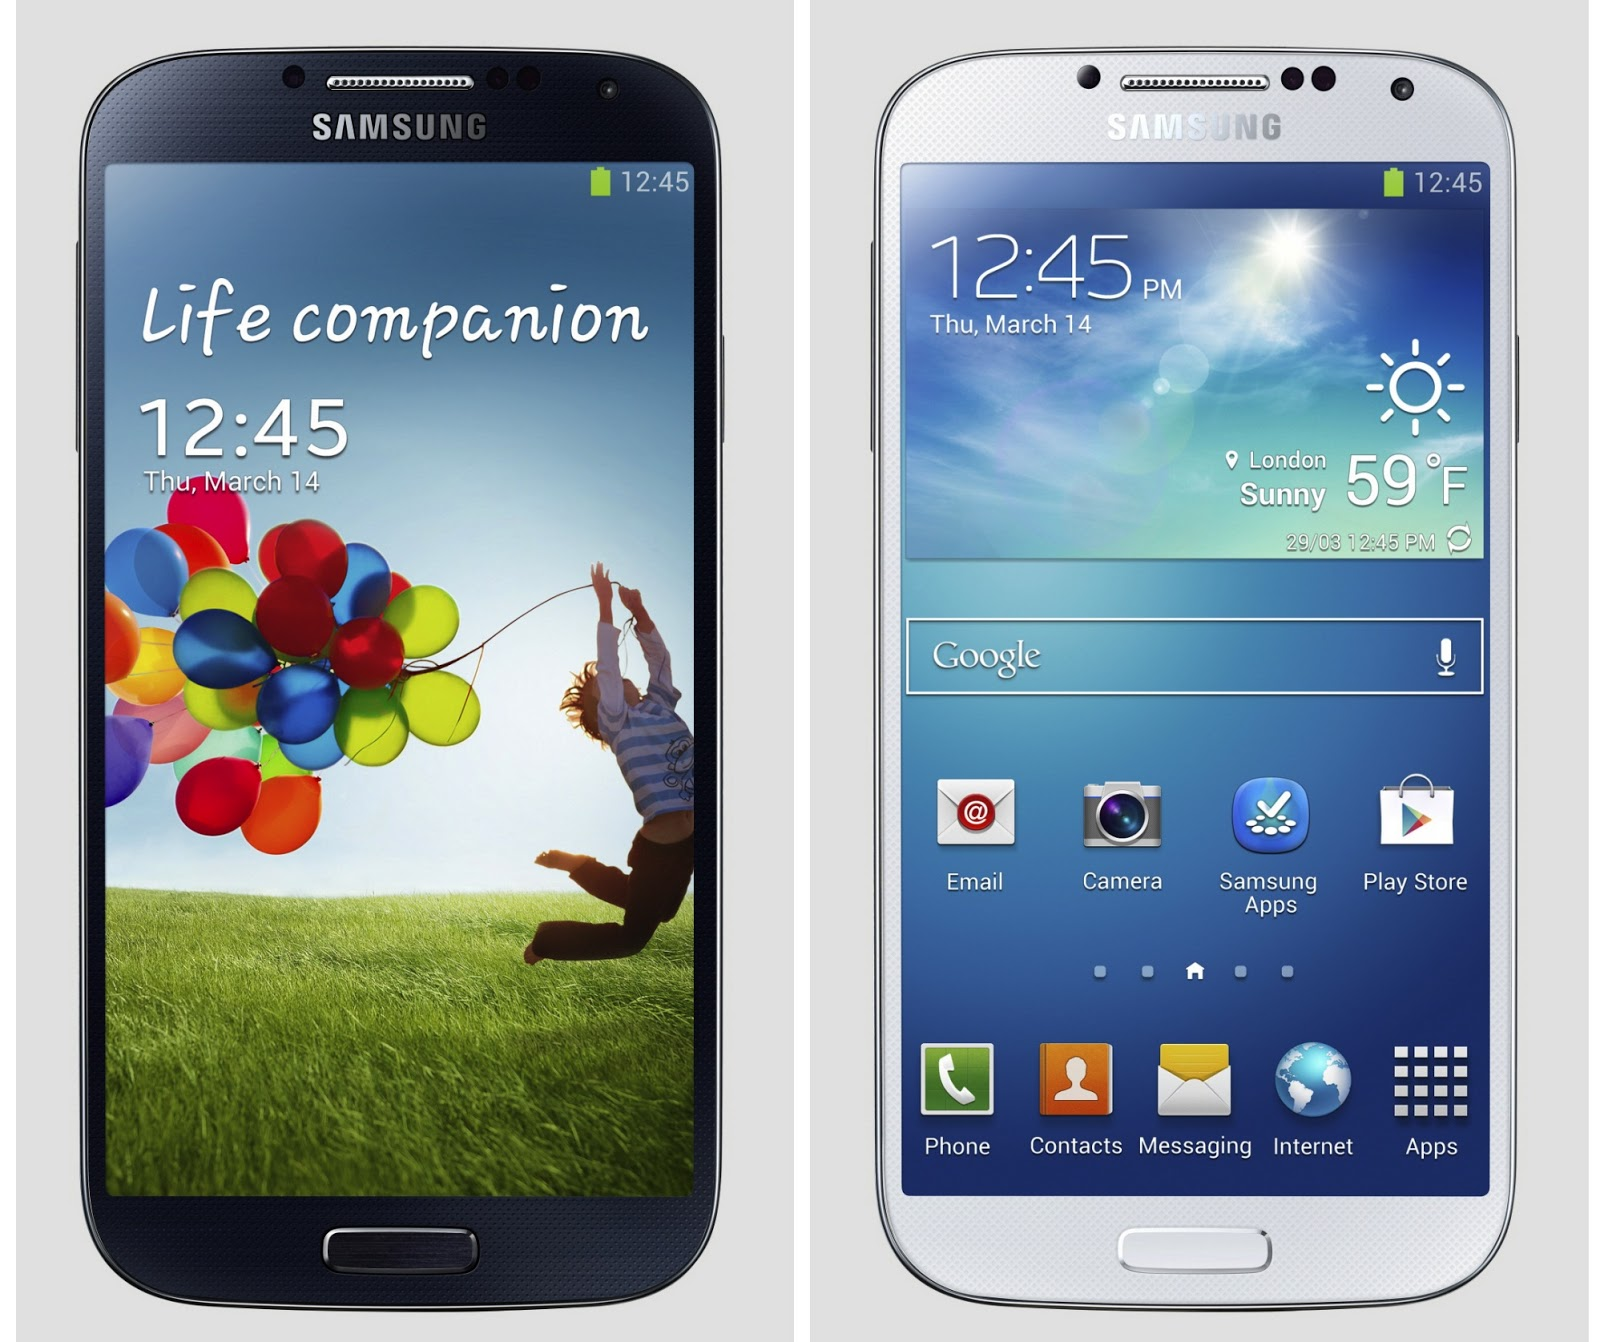 Samsung I9505 Galaxy S4 Full Phone Specifications